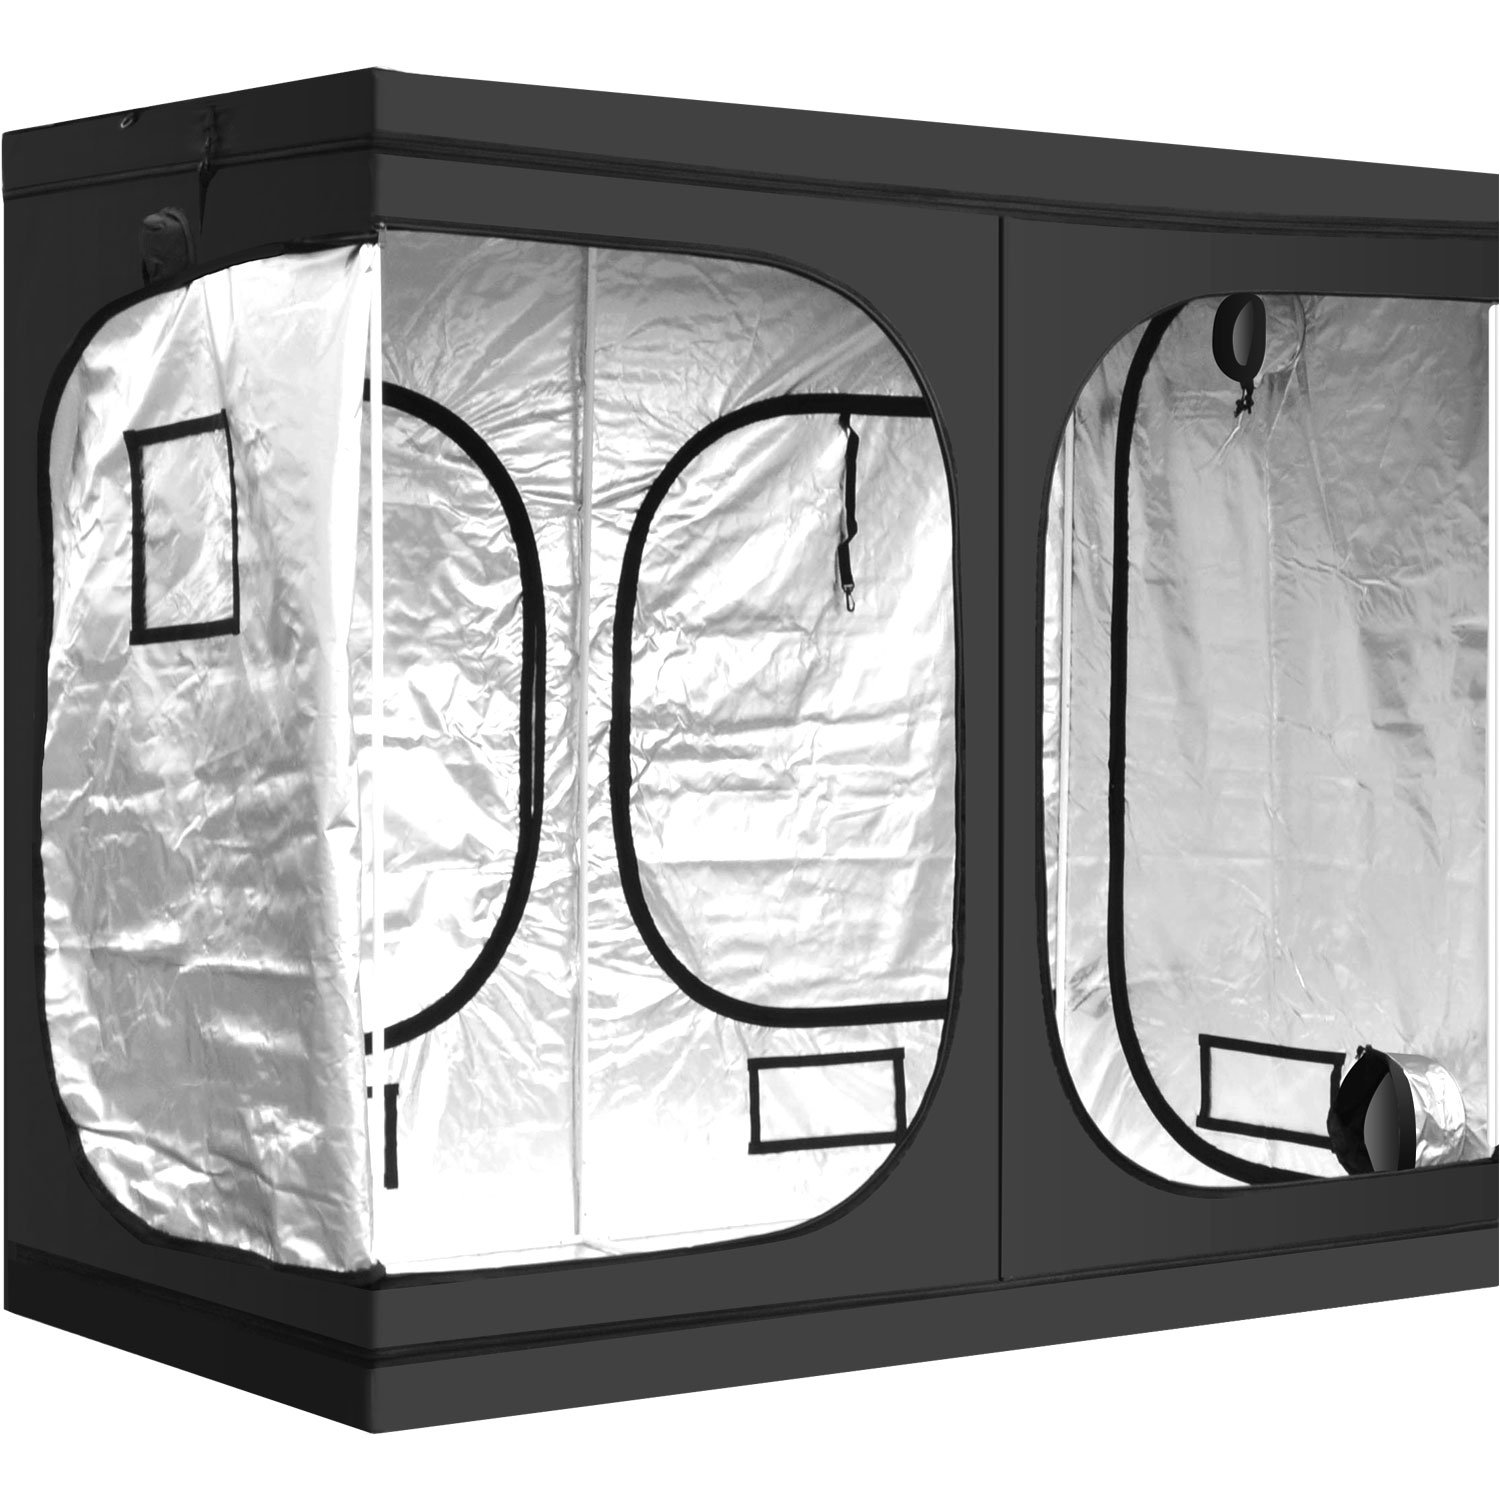 """iPower GLTENTXL1A Hydroponic Water-Resistant Grow Tent Floor Tray, Tool Bag for Indoor Plant Seedling, Propagation, Blossom, 48"""" x 96"""" x 78"""", Black"""